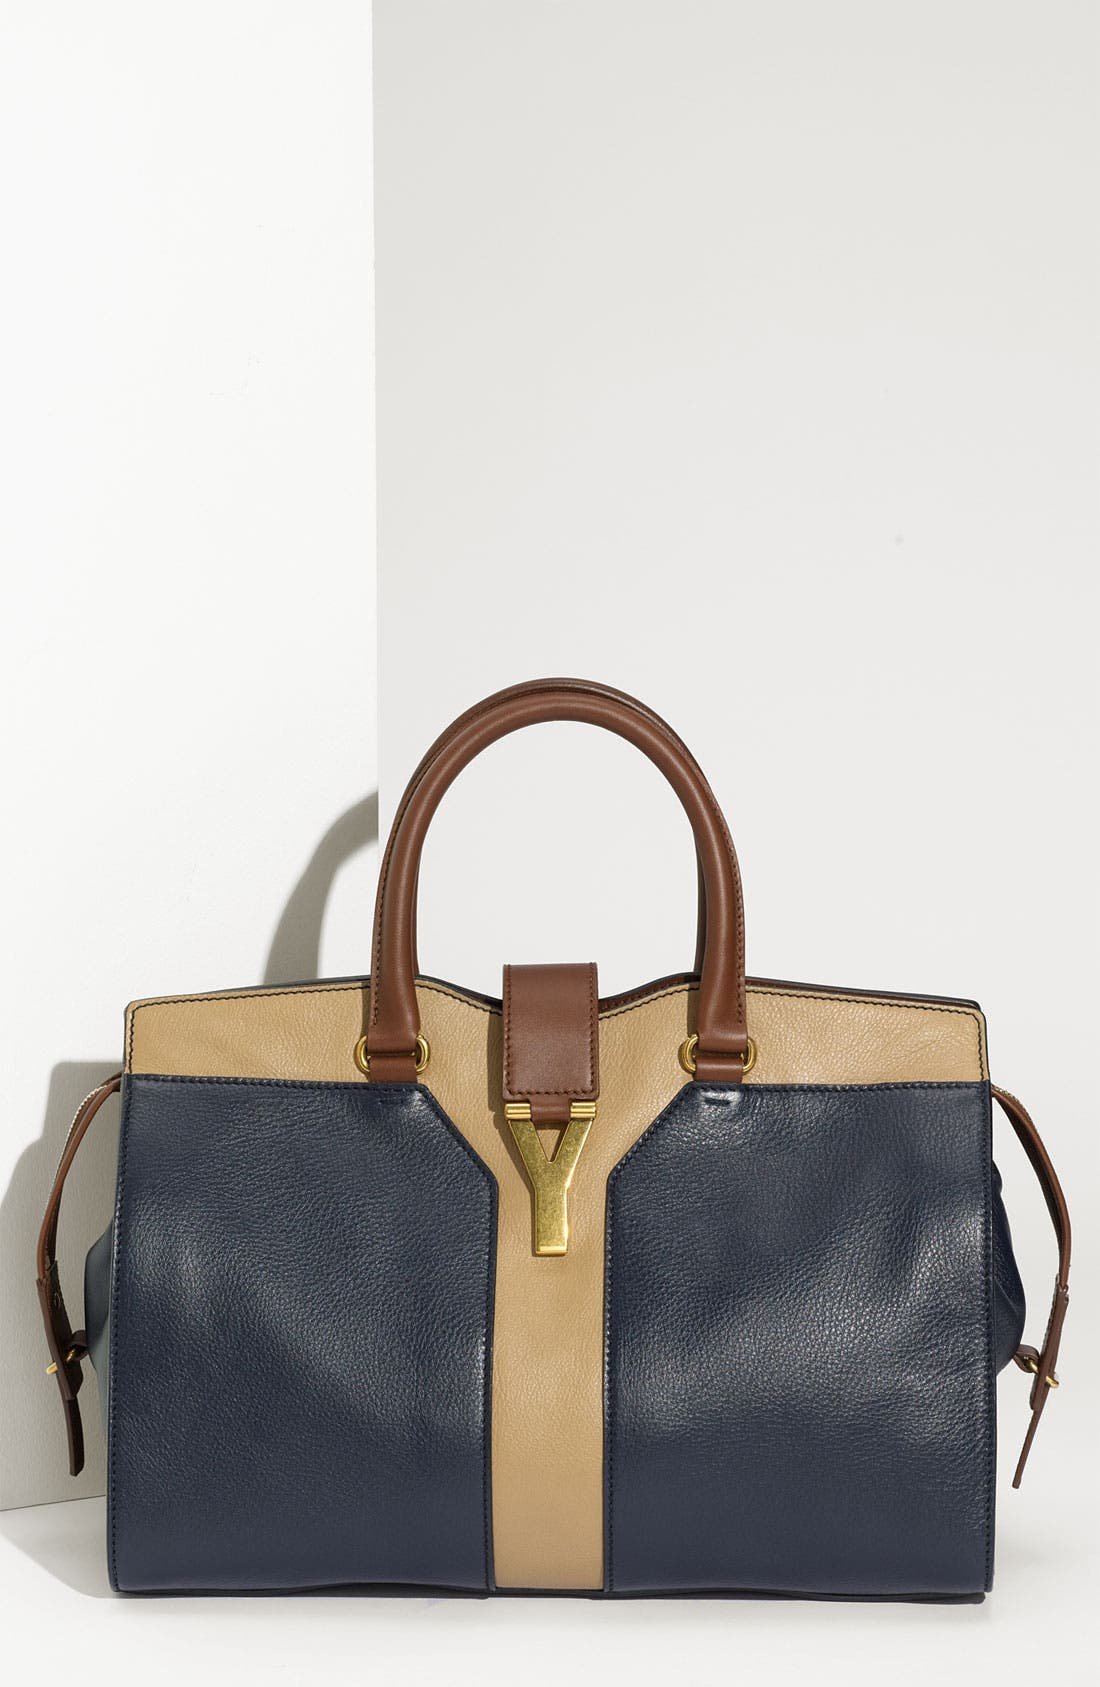 Alternate Image 1 Selected - Yves Saint Laurent 'Cabas Chyc - Medium' Satchel